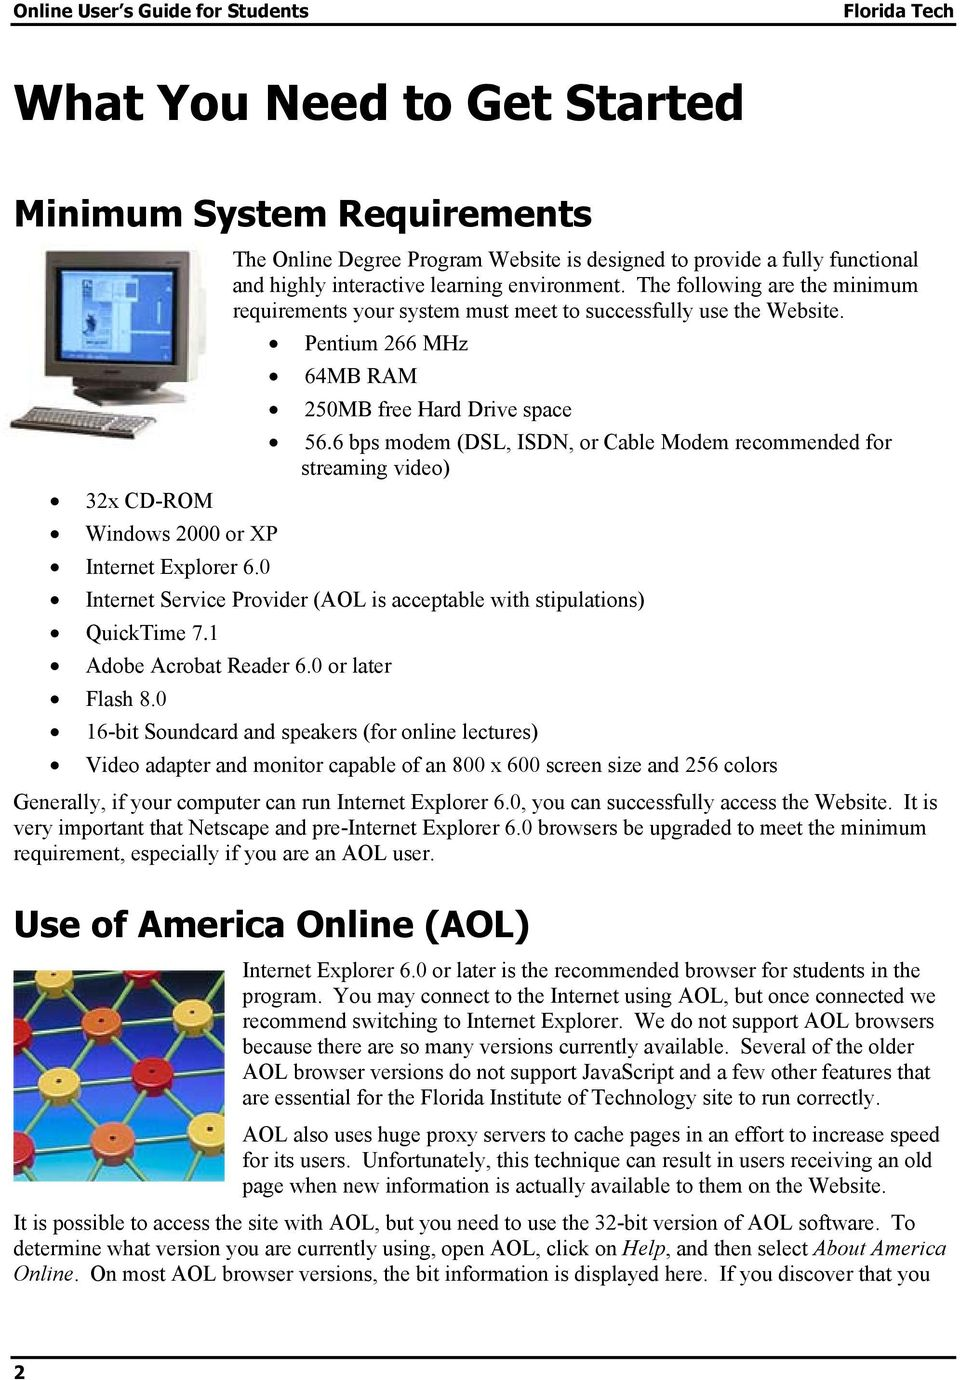 6 bps modem (DSL, ISDN, or Cable Modem recommended for streaming video) 32x CD-ROM Windows 2000 or XP Internet Explorer 6.0 Internet Service Provider (AOL is acceptable with stipulations) QuickTime 7.